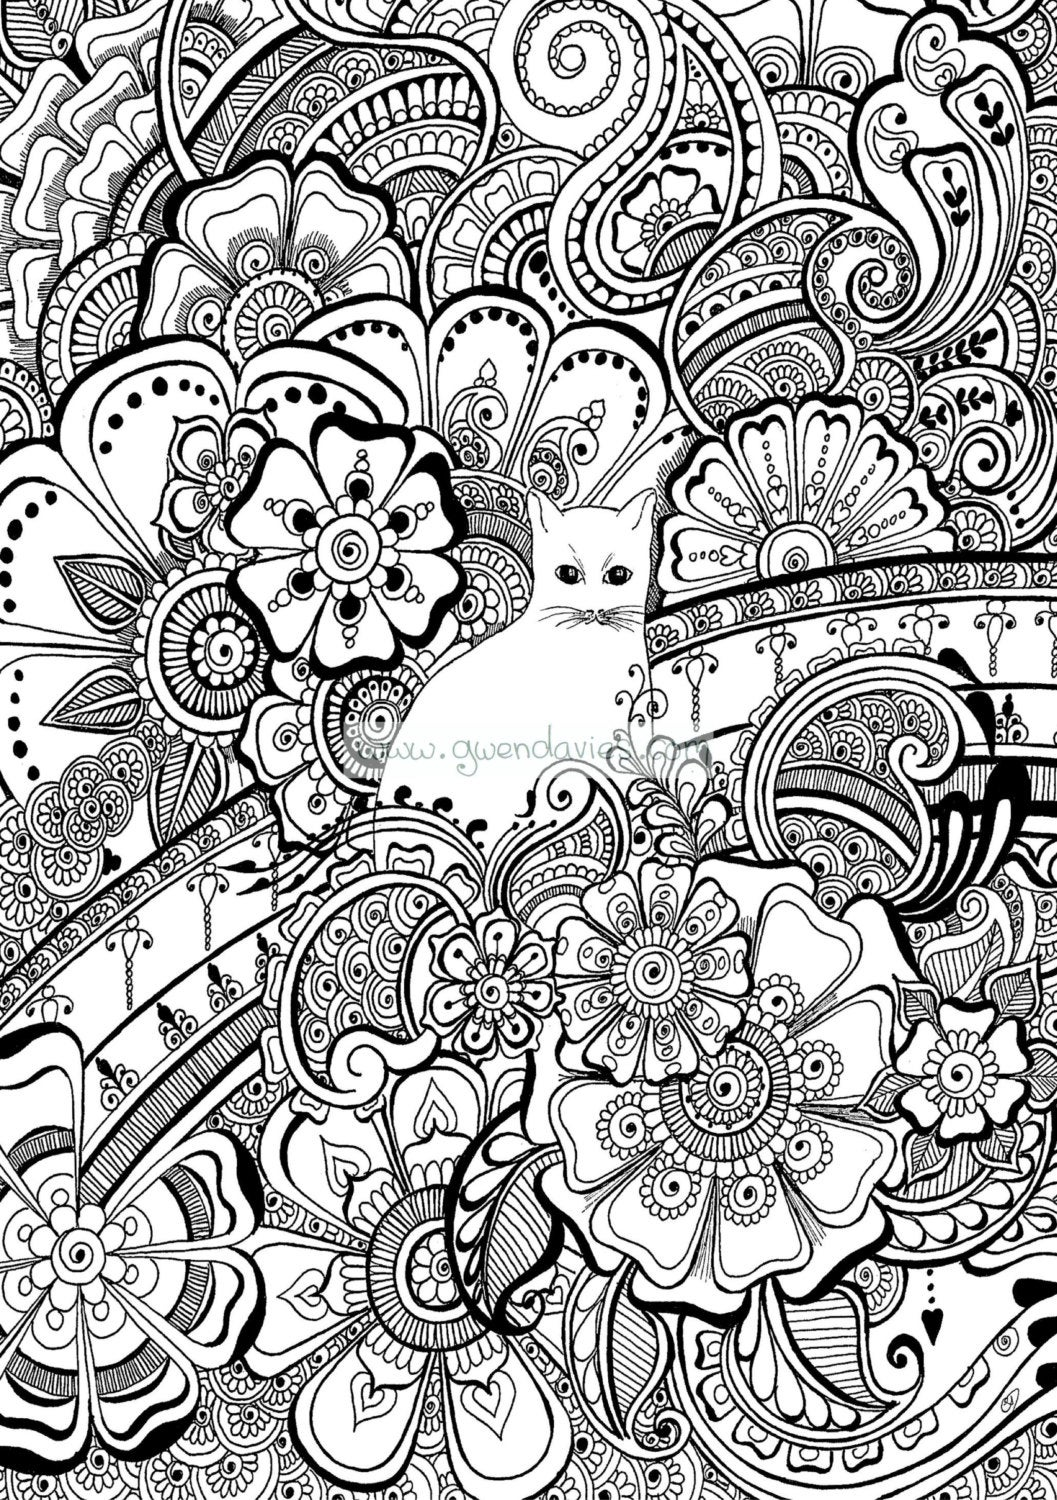 coloring book for adults souq cool adult coloring pages coloring pages colorful world book coloring for souq adults